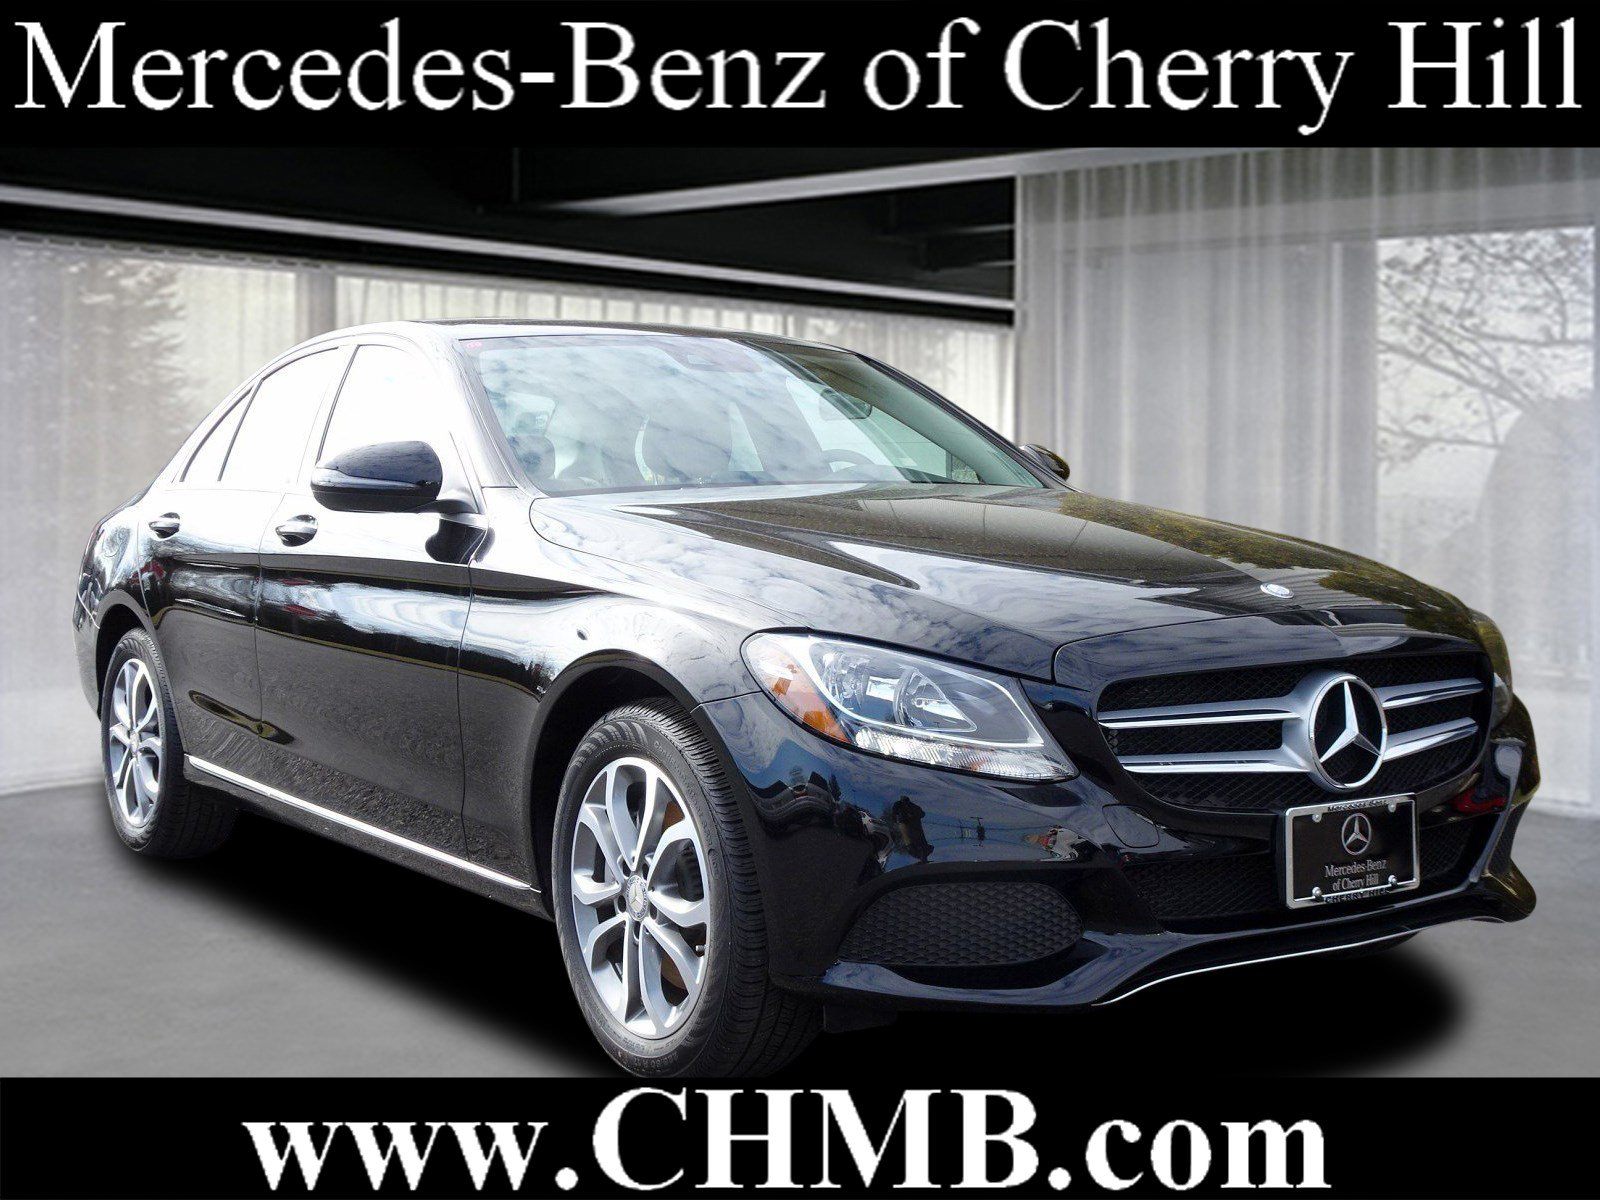 Pre Owned 2017 Mercedes Benz C Class C 300 SEDAN in Cherry Hill